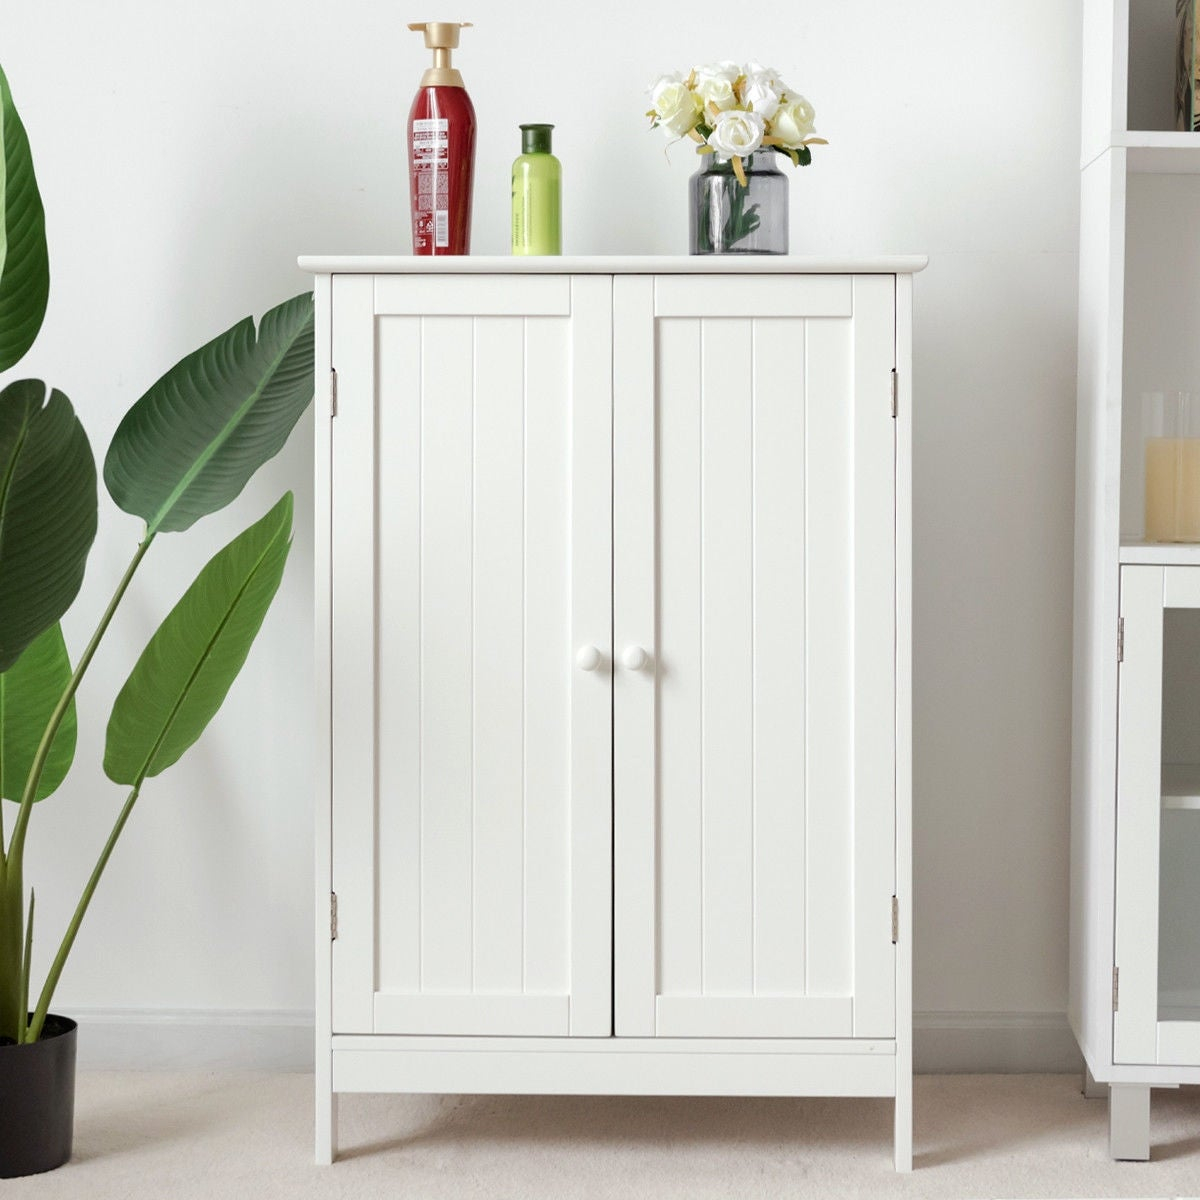 Gymax Bathroom Floor Storage Cabinet Double Door Kitchen Cupboard Shoe Cabinet White intended for proportions 1200 X 1200